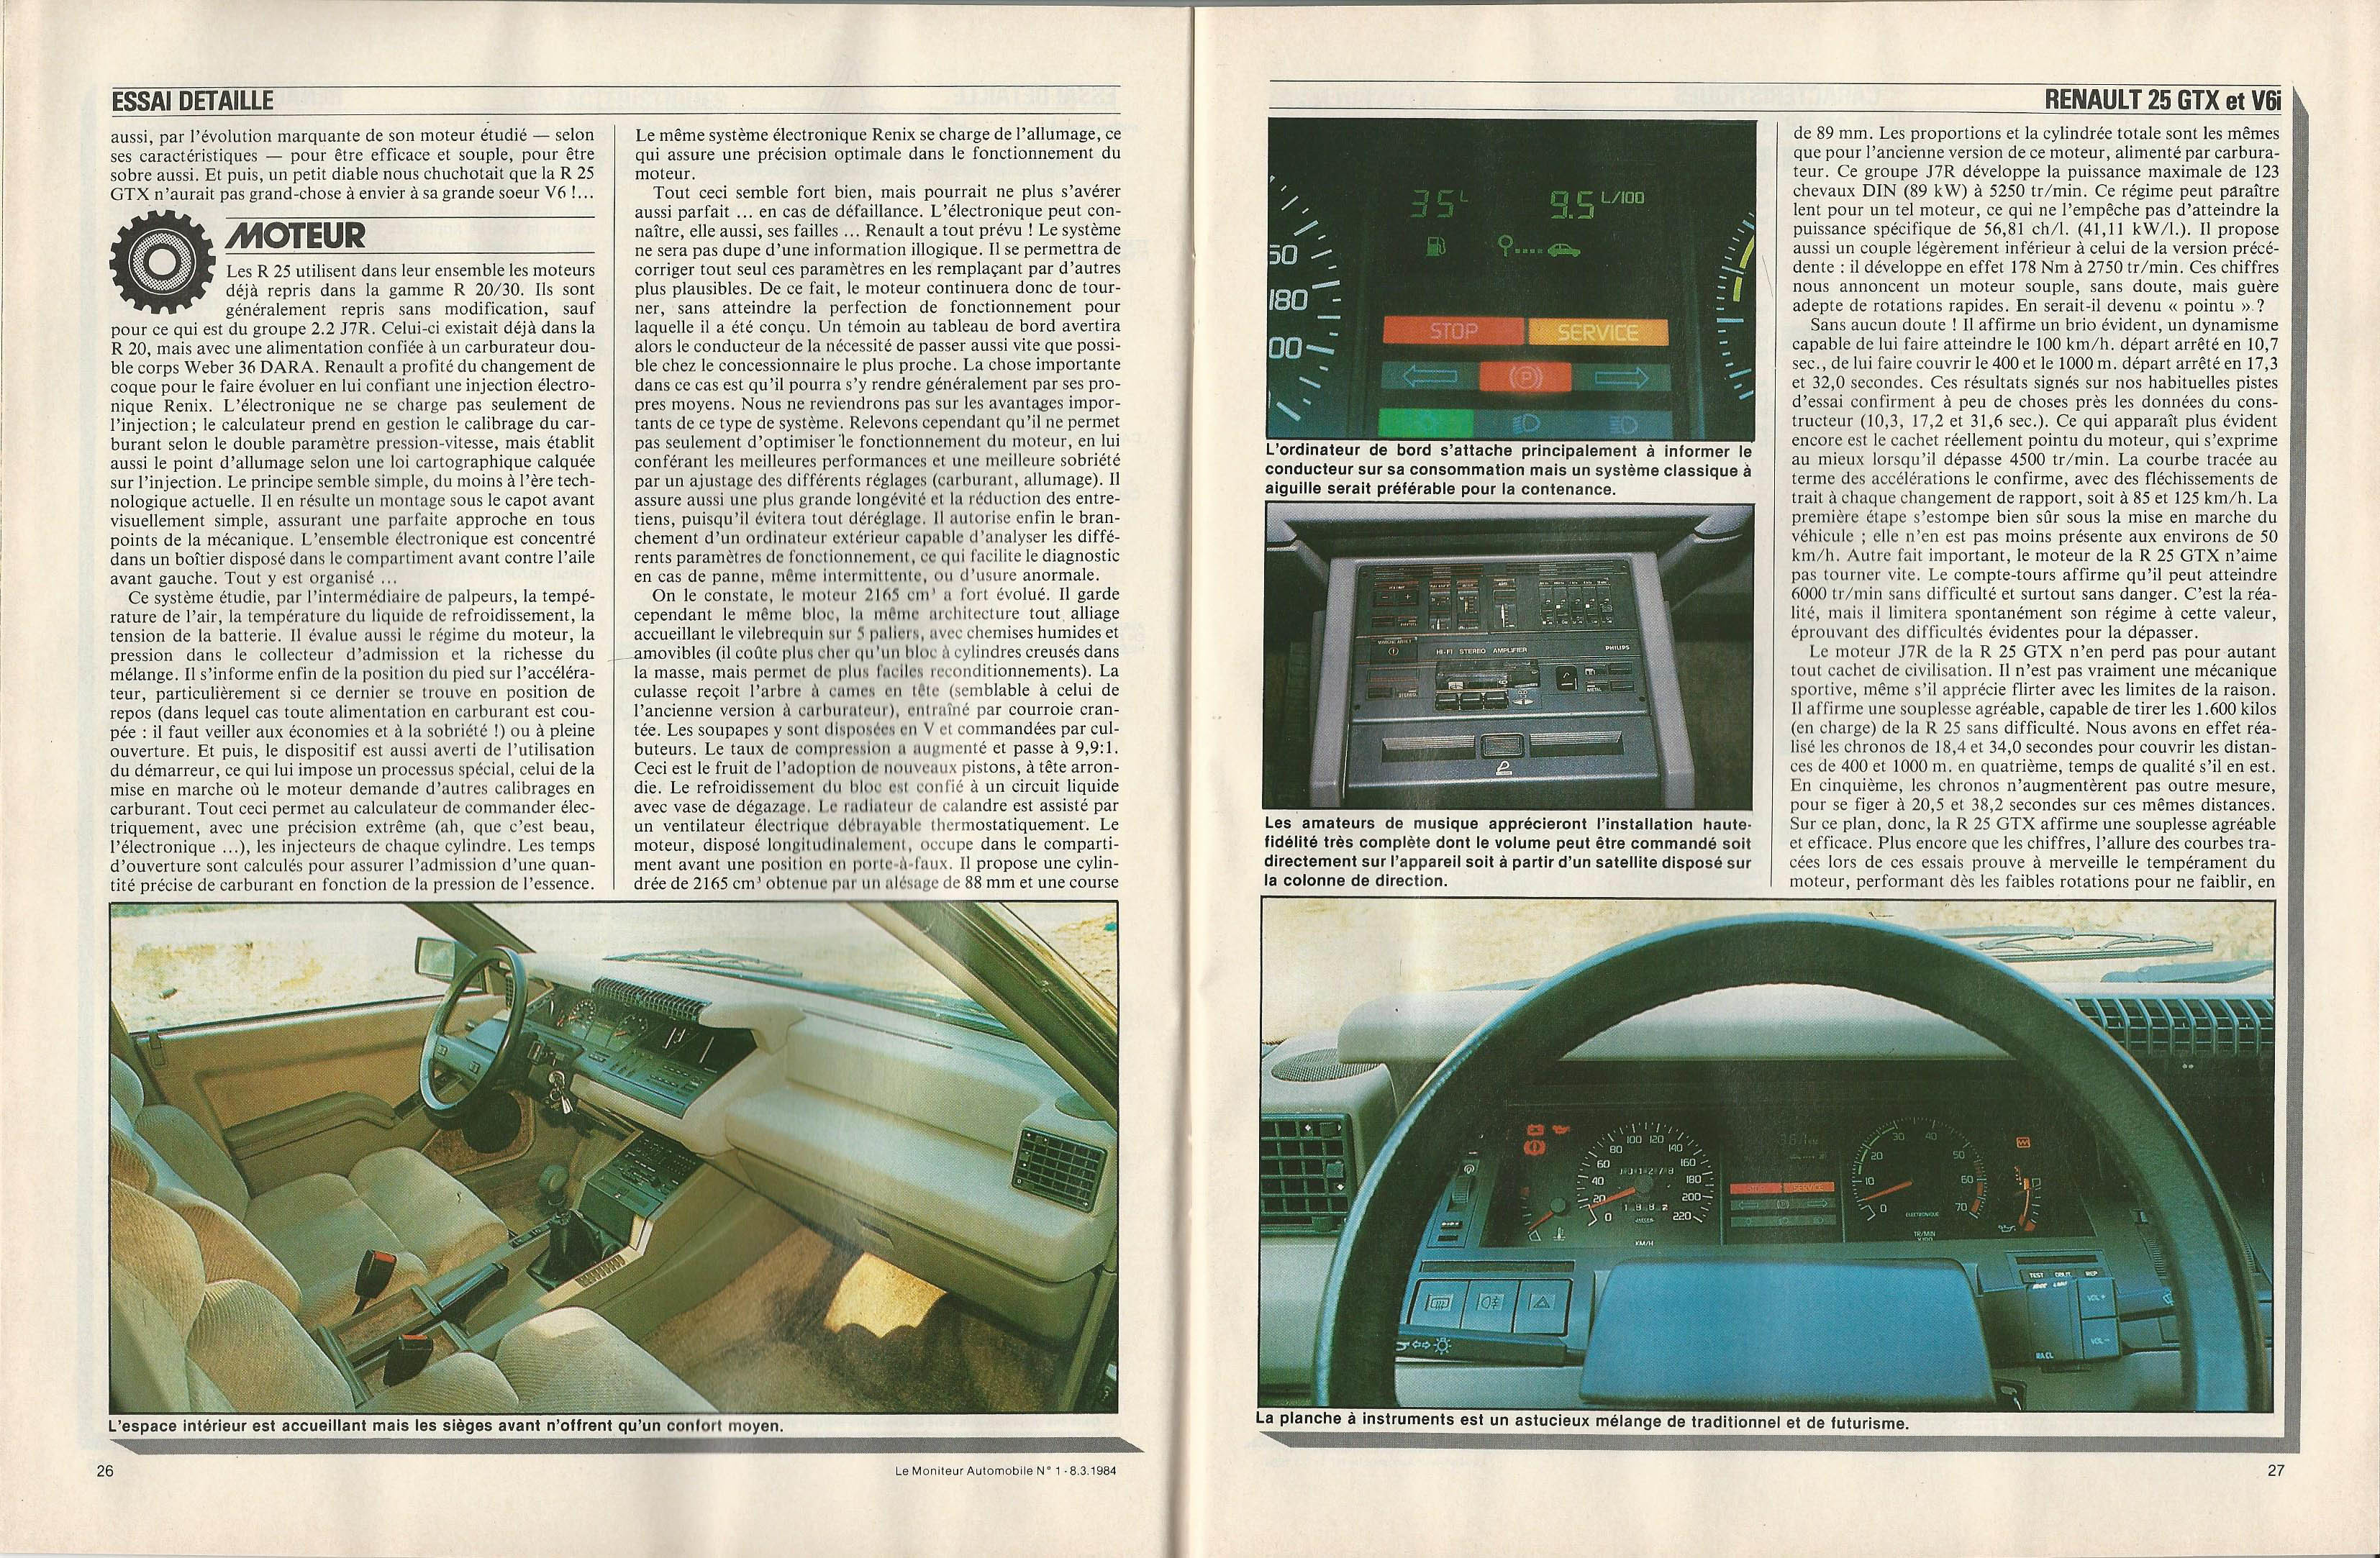 Moniteur Automobile 01 - 08 Mars 1984 (14)